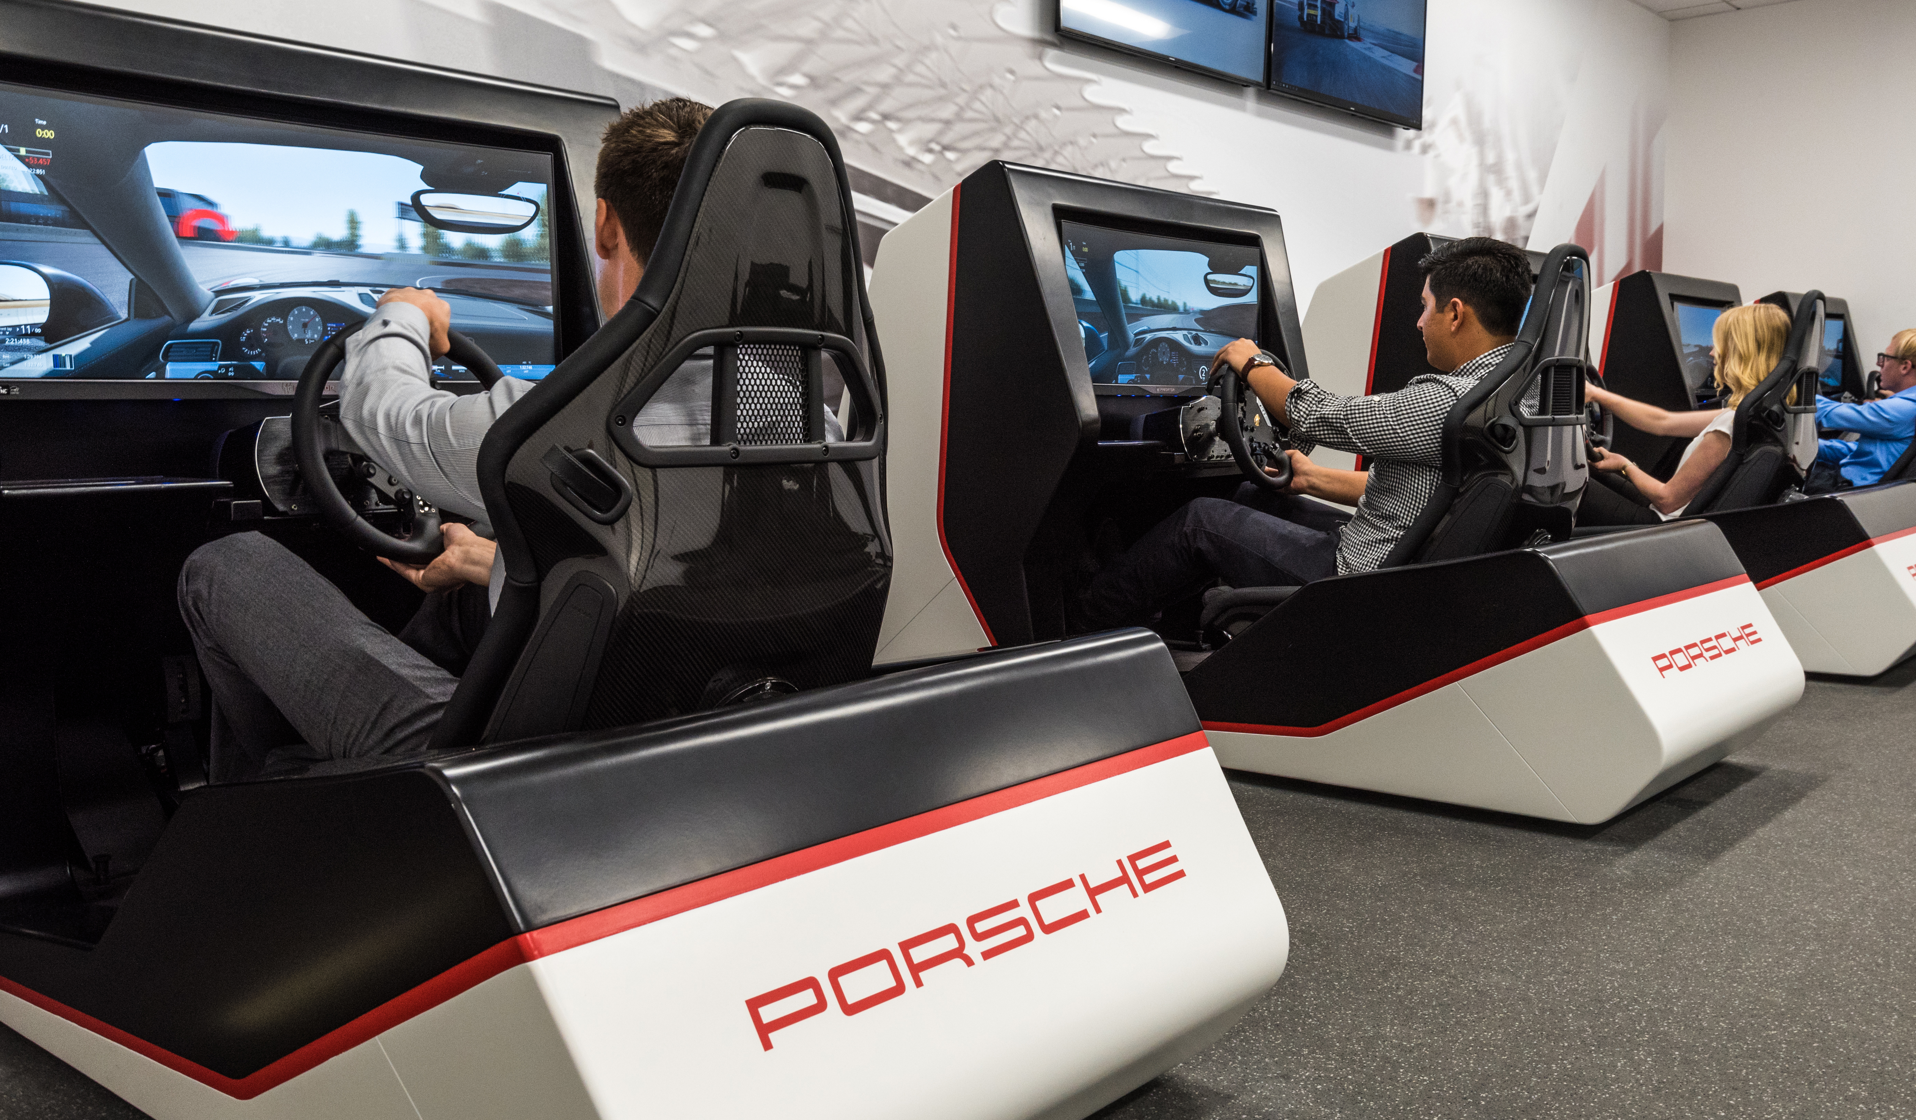 Off The Track | Porsche Experience Center - Los Angeles, CA